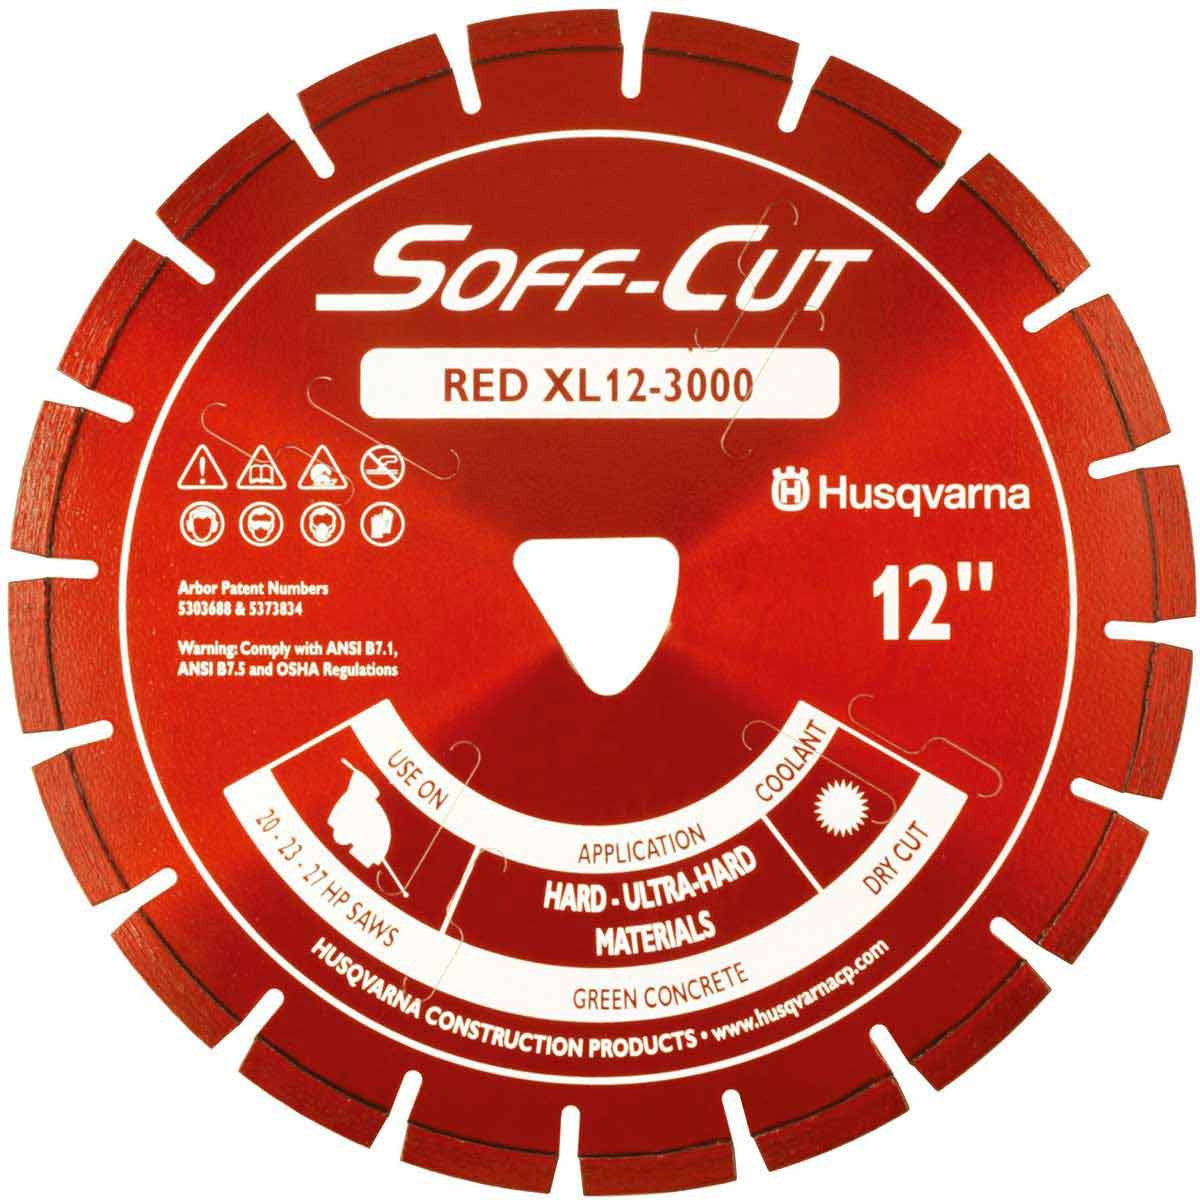 Husqvarna Soff-Cut Excel 3000 Red Ultra Early Saw Blade